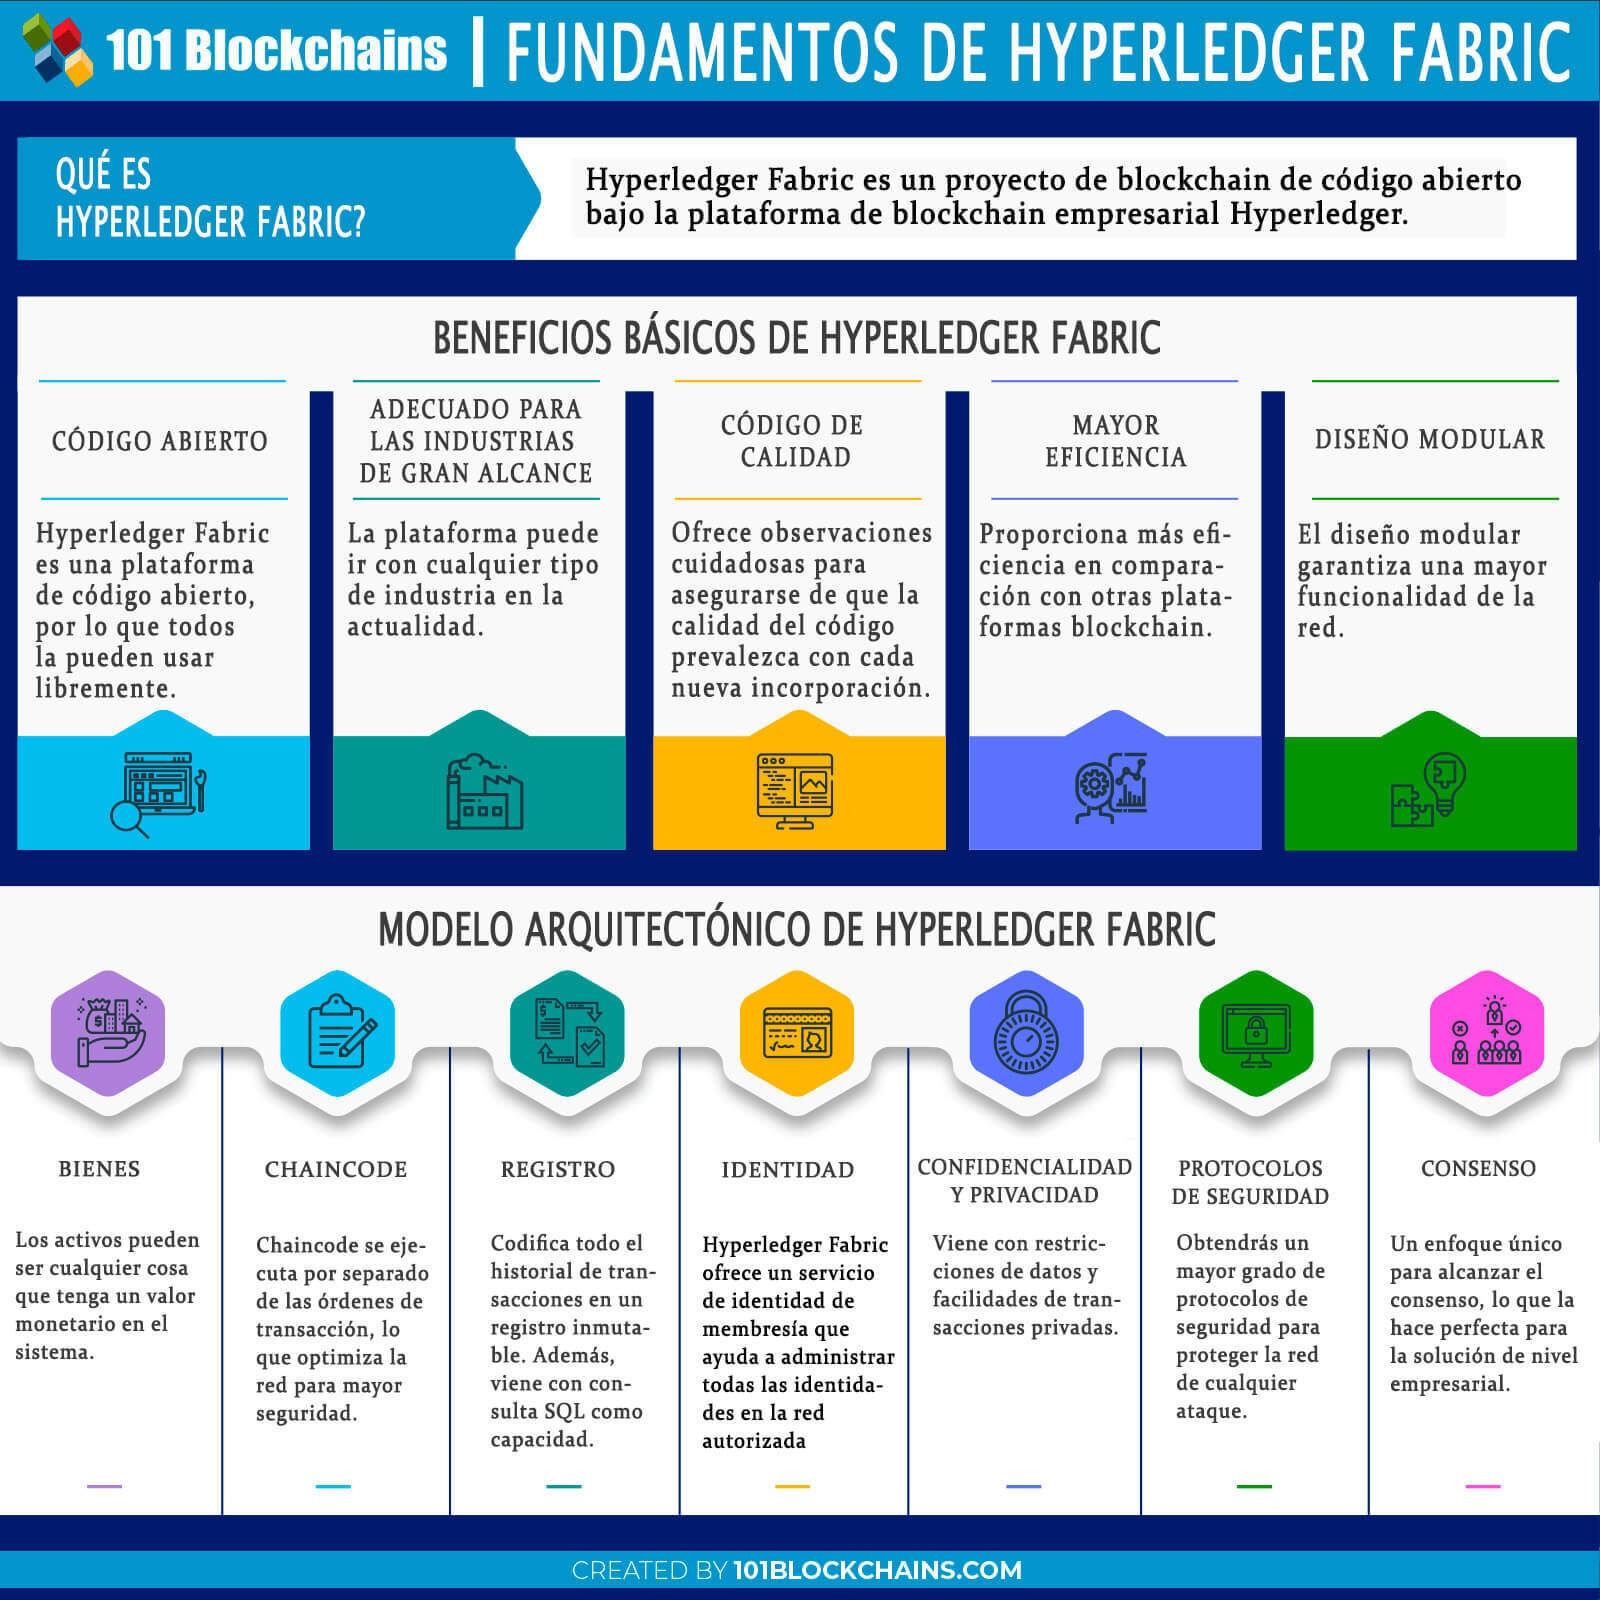 FUNDAMENTOS DE HYPERLEDGER FABRIC